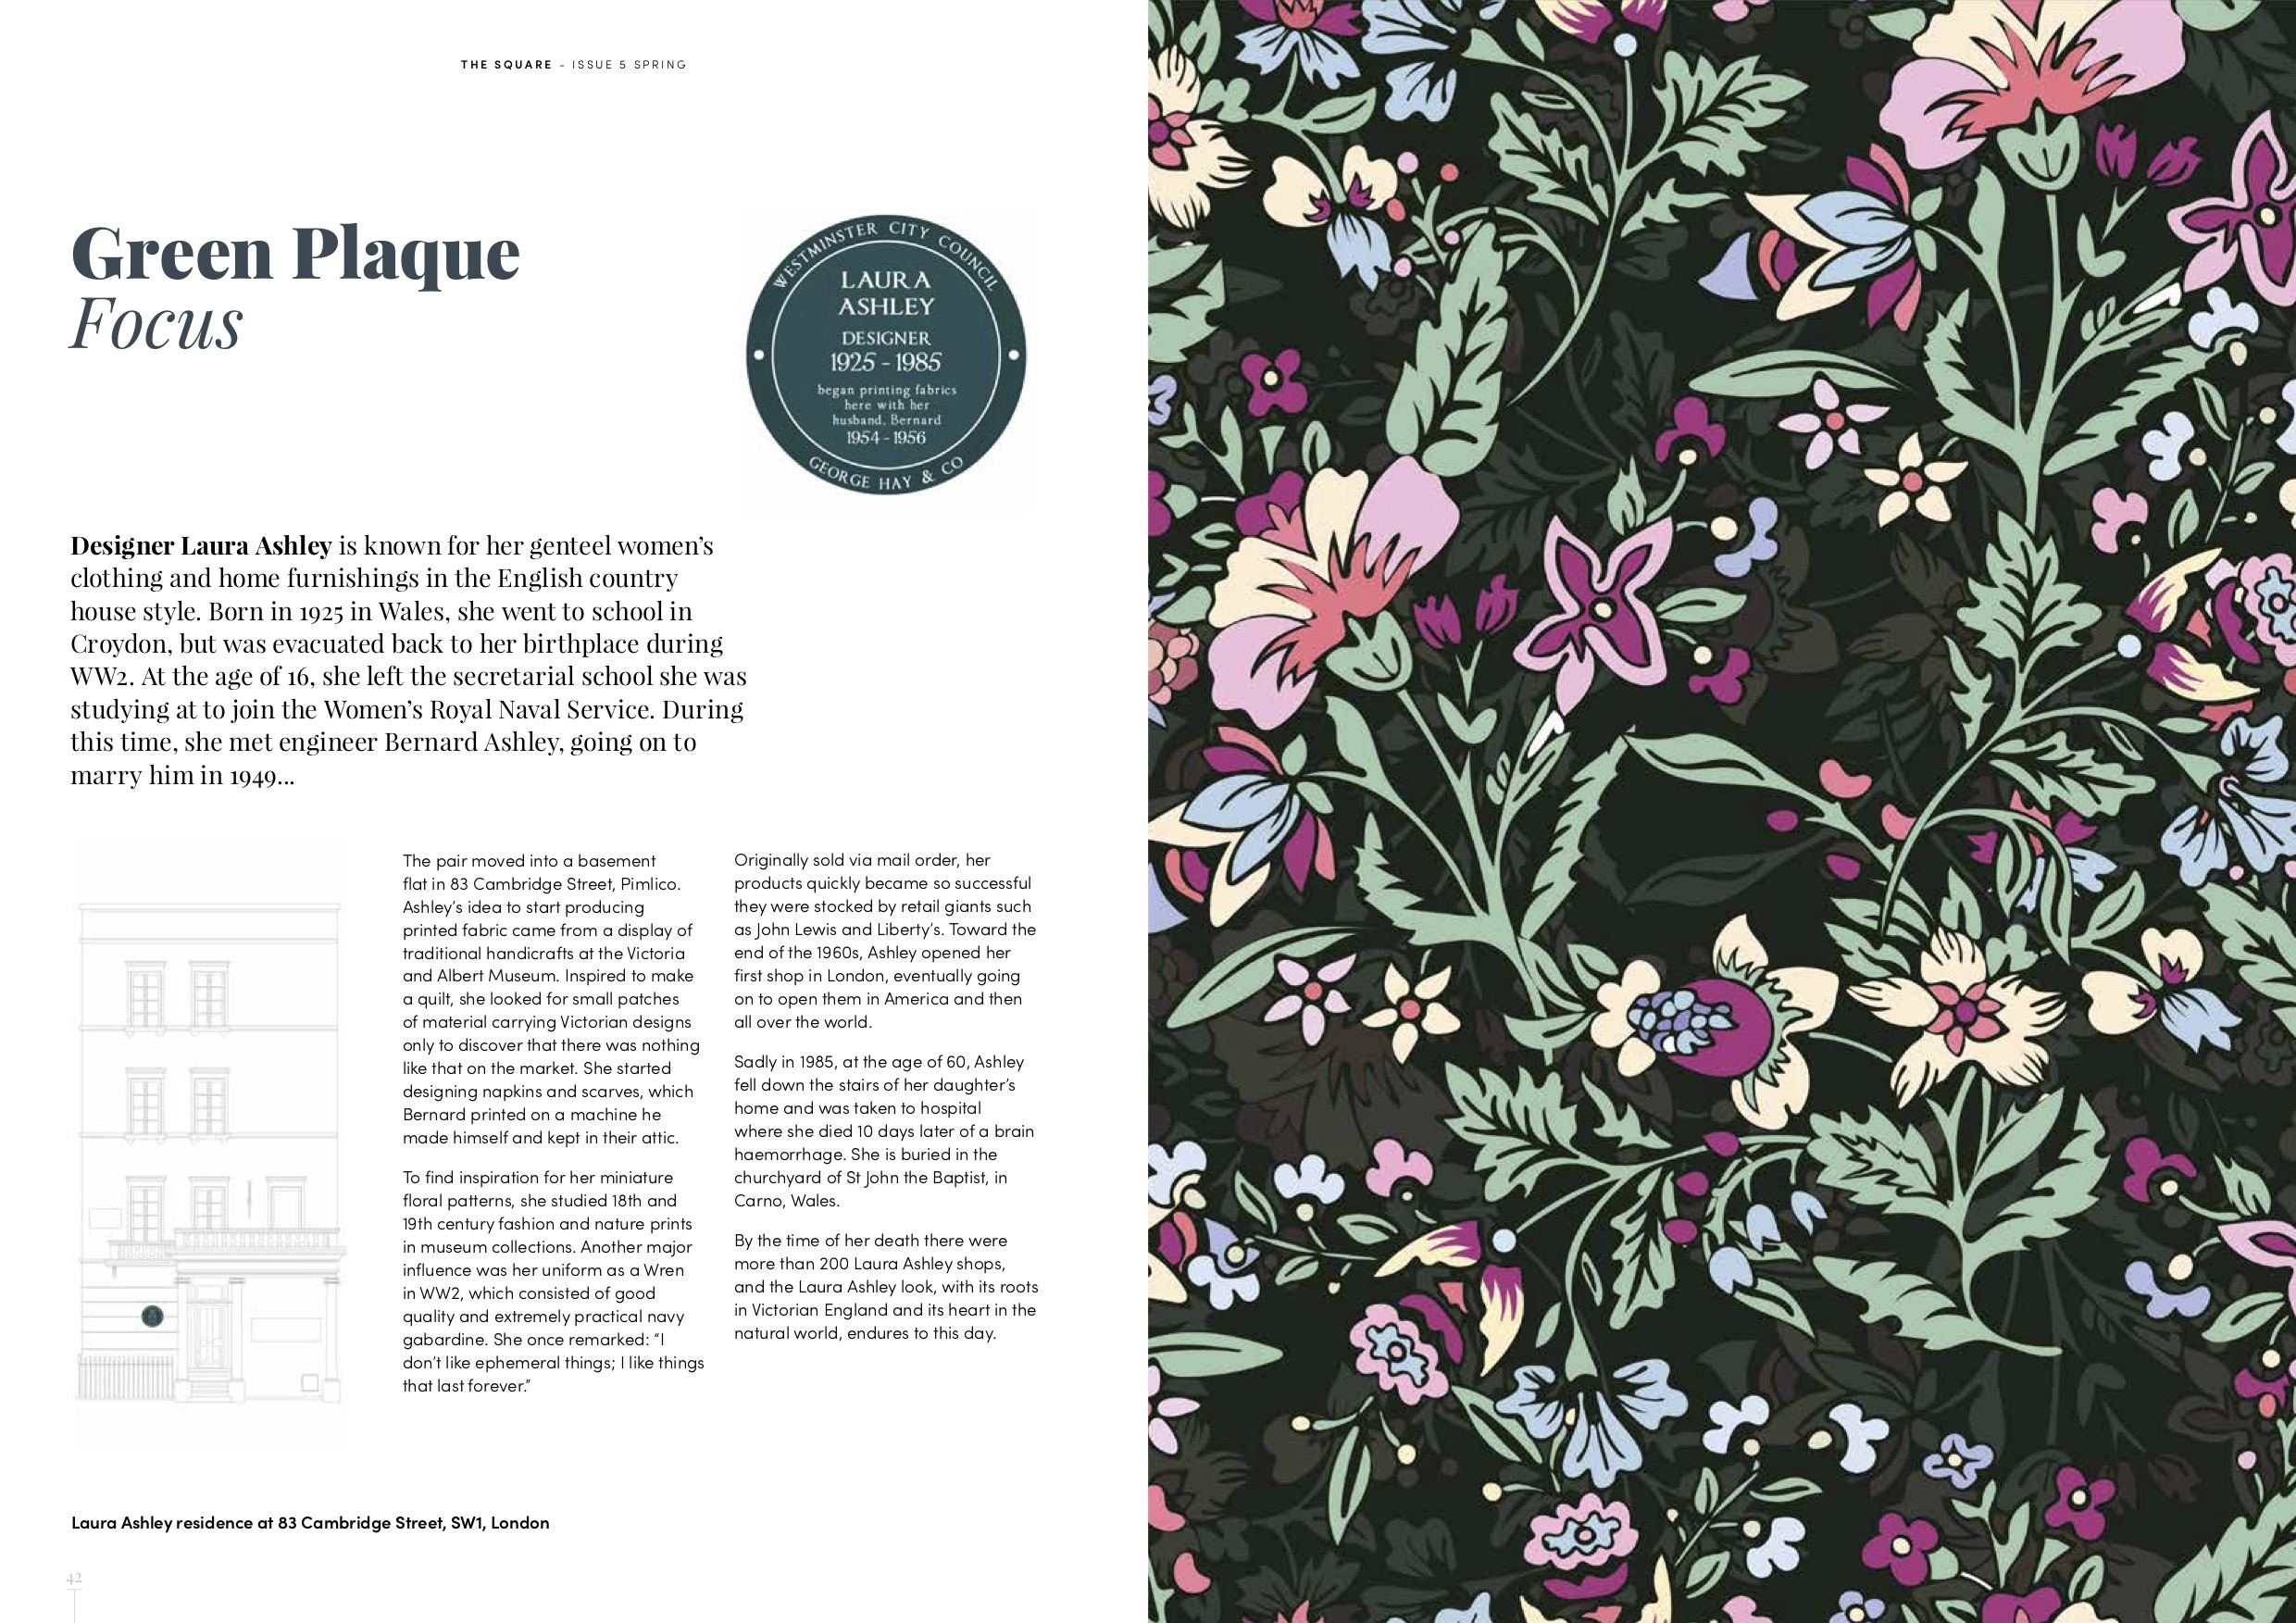 TheSquare-Issue5-low-res Final copy 24.jpg